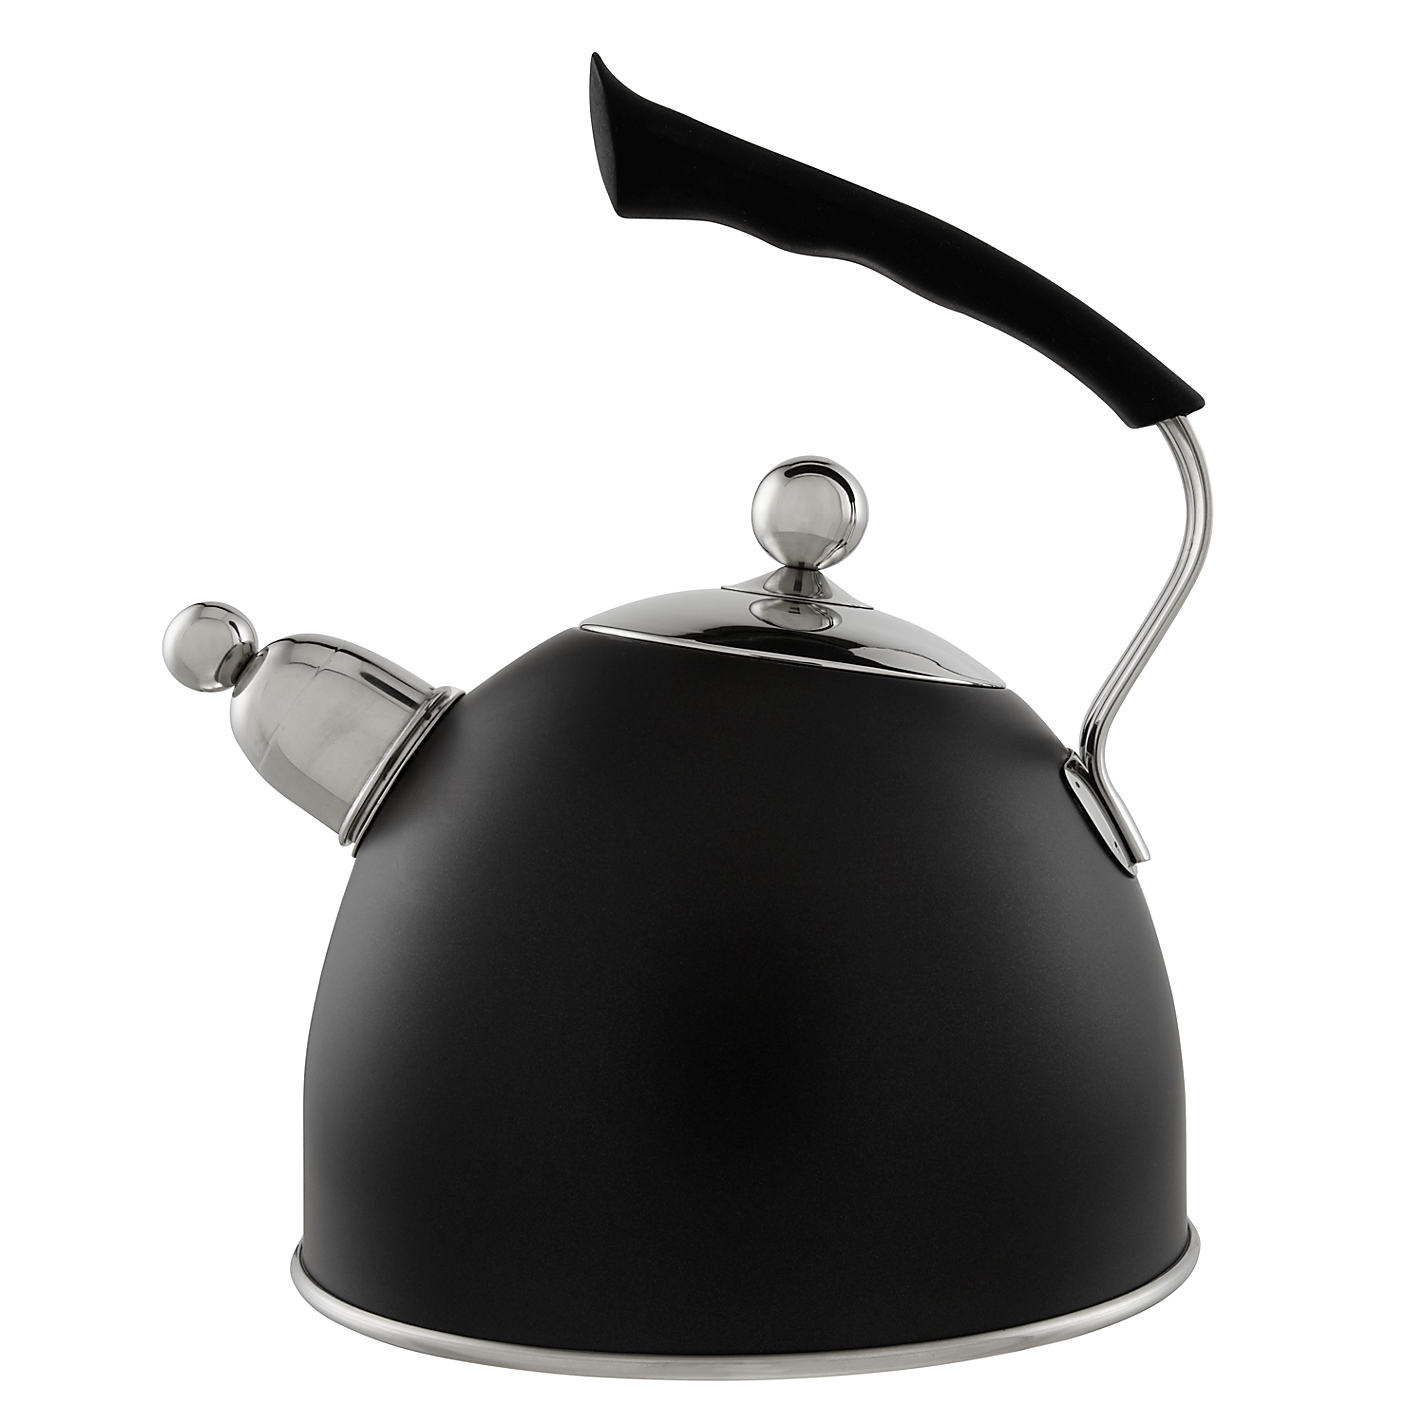 buy john lewis stovetop whistling kettle black  john lewis - buy john lewis stovetop whistling kettle black online at johnlewiscom